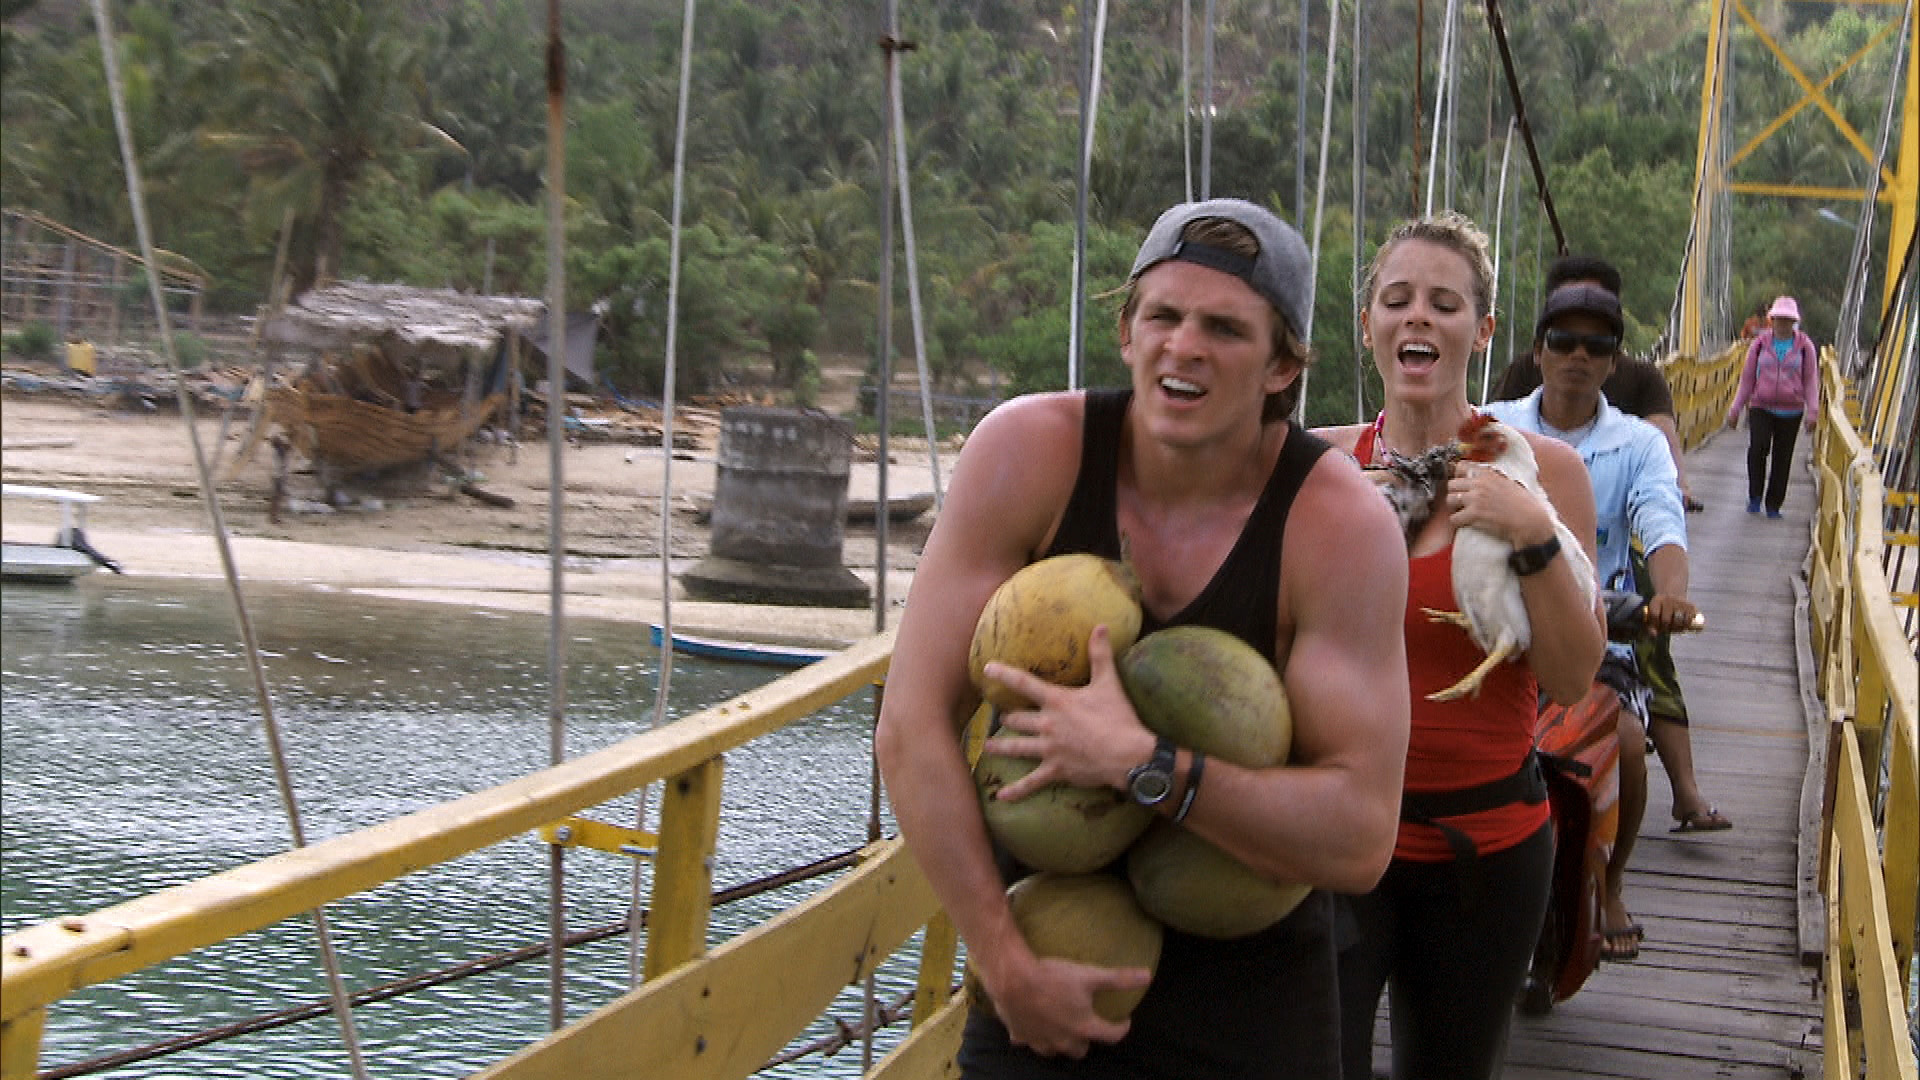 Cole and Sheri run across the bridge, carrying chickens and coconuts, to the Cenigan side.